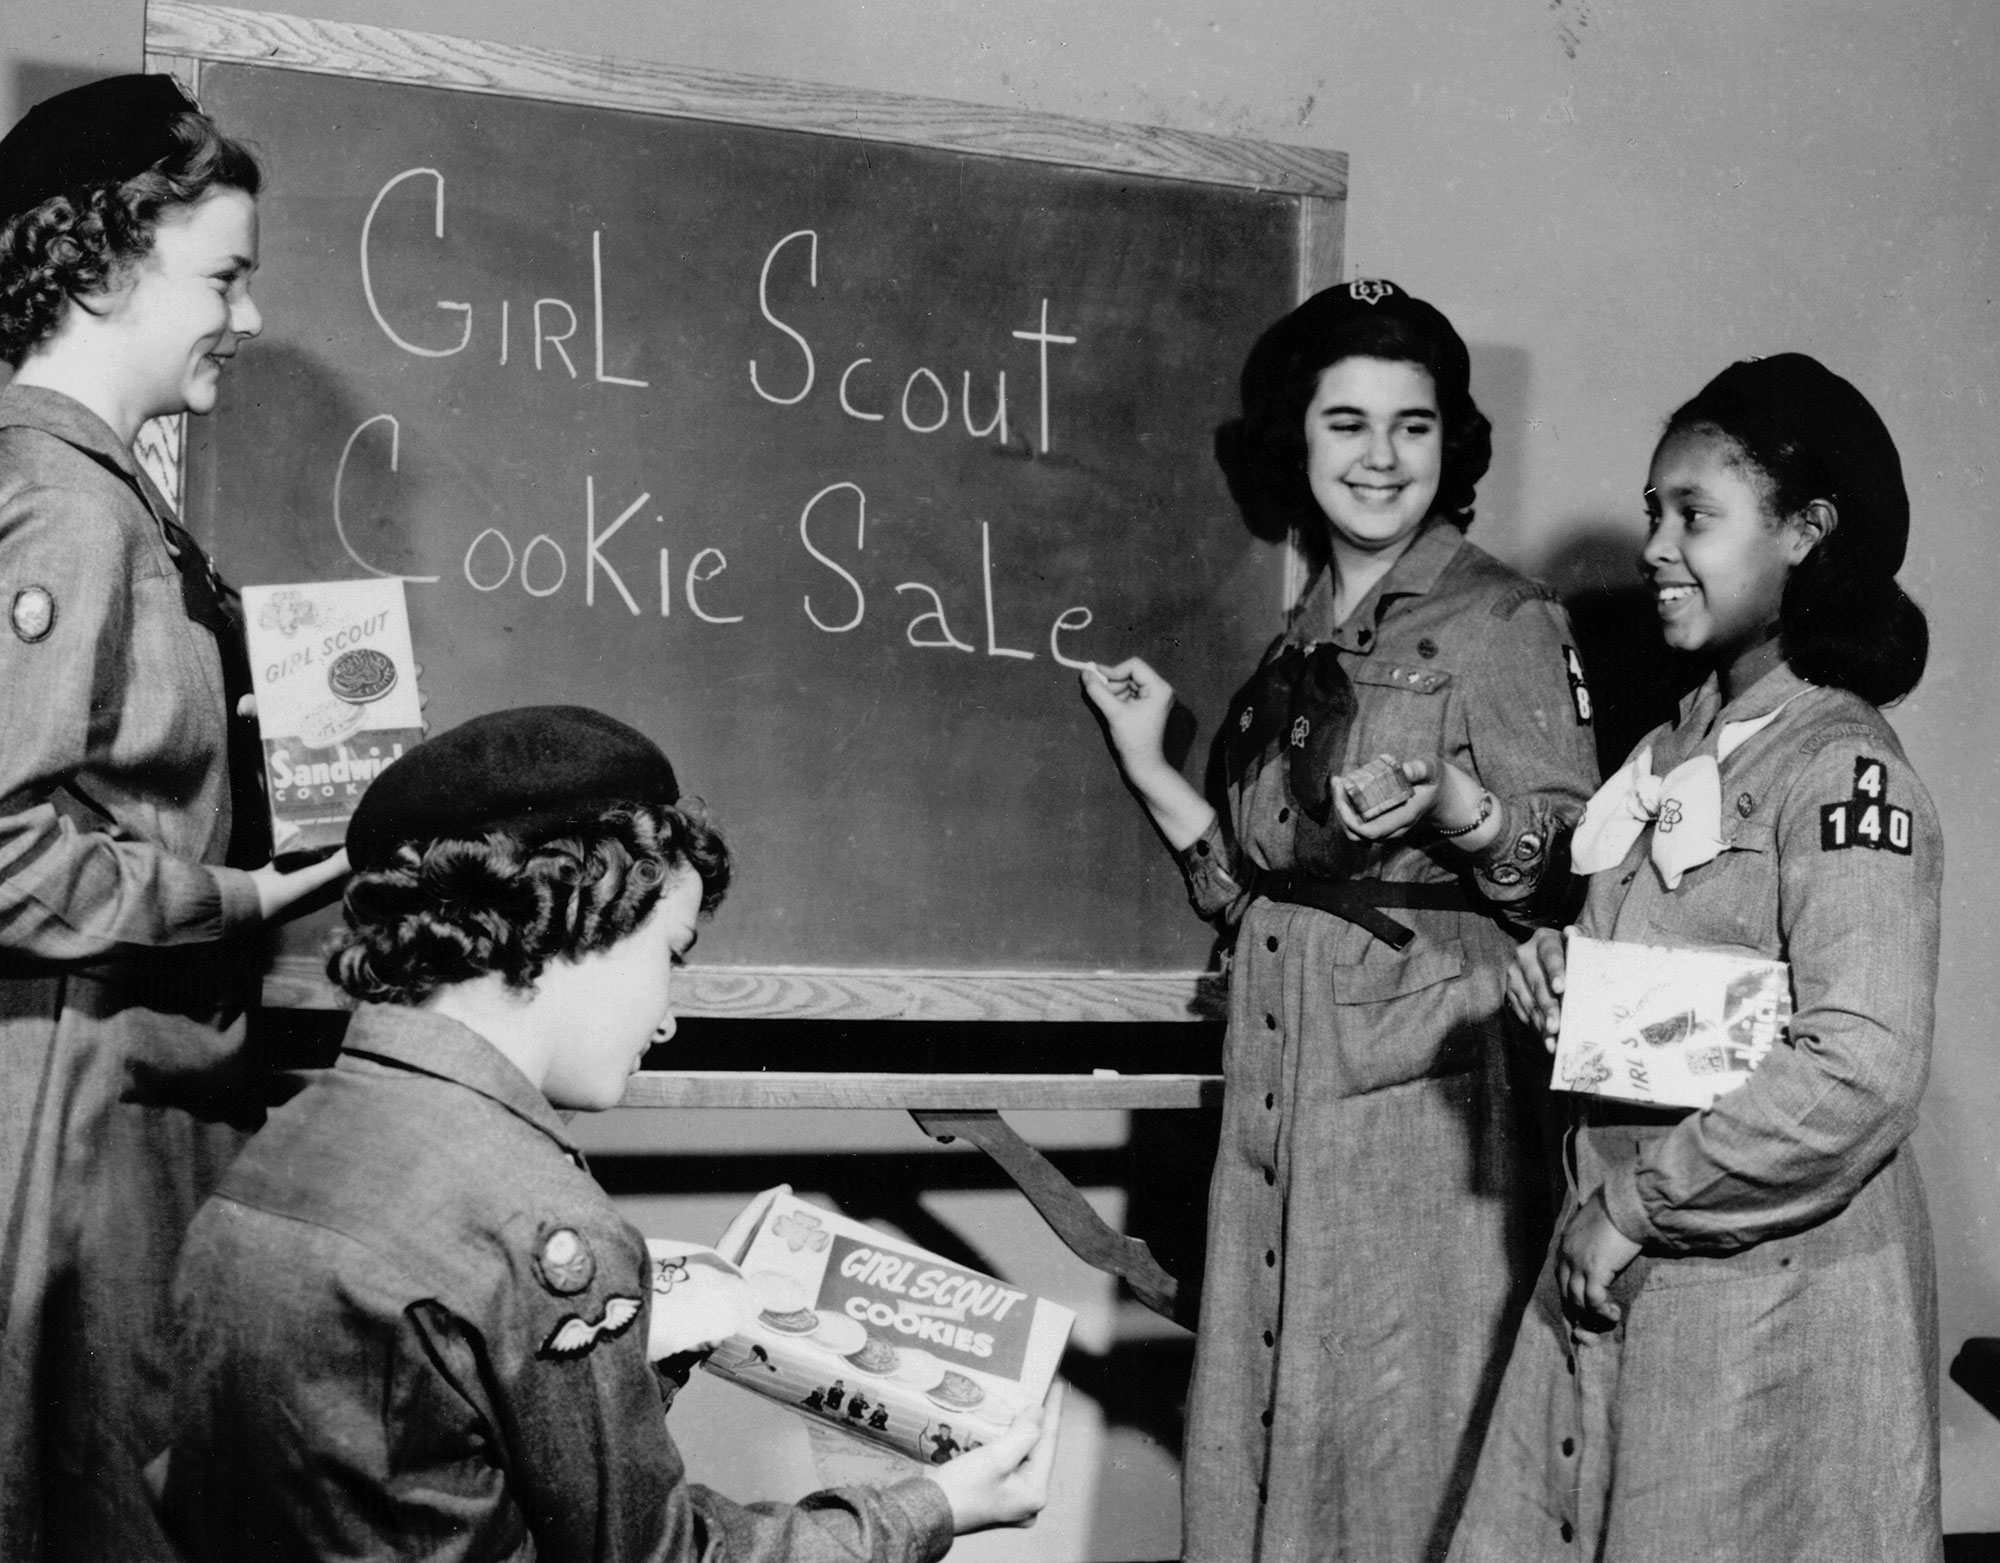 Who First Came Up with the Idea of Selling Girl Scout Cookies?